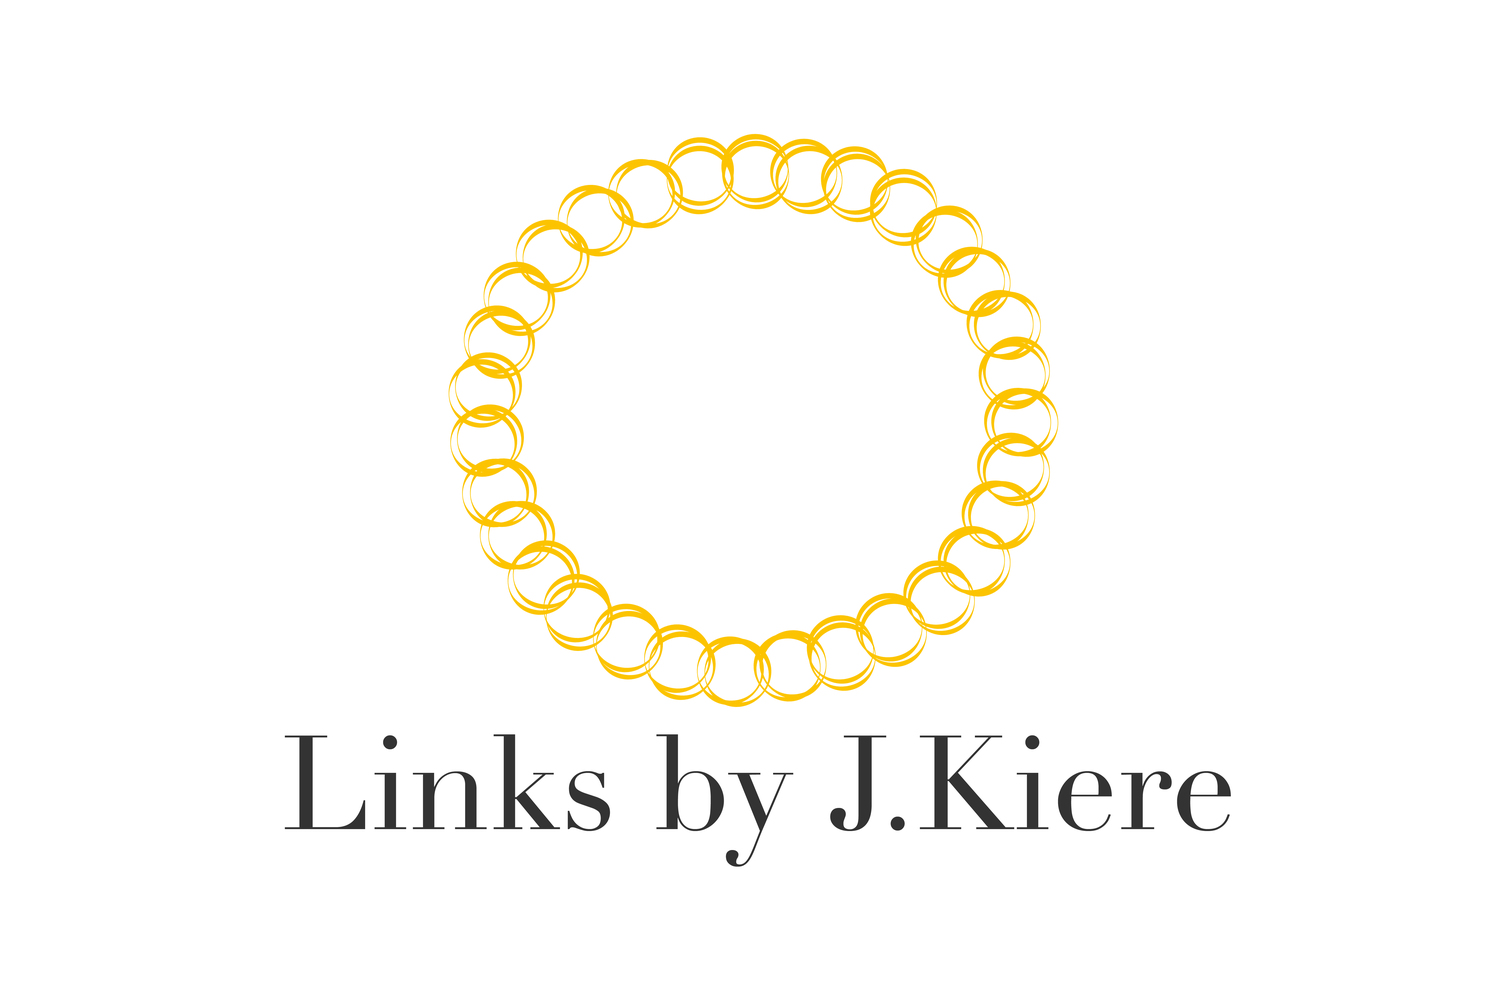 Links by J.Kiere